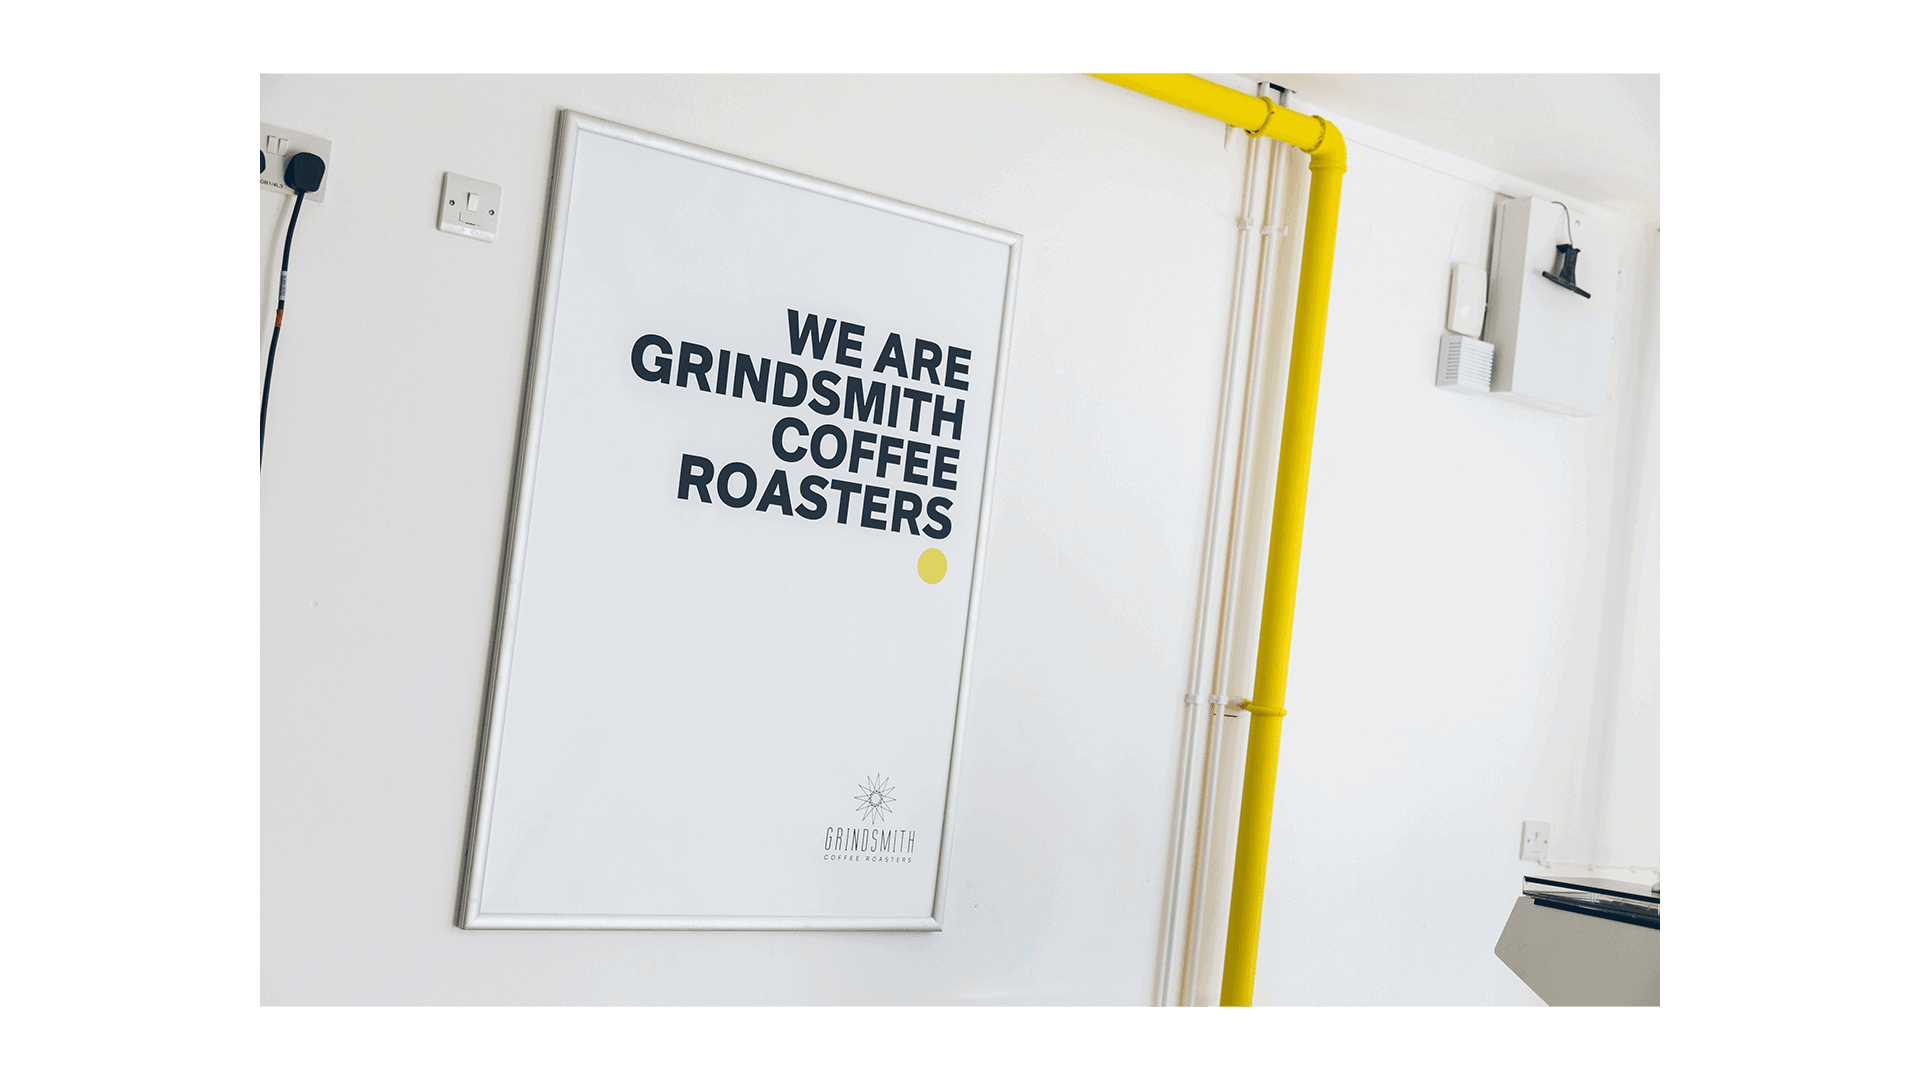 Grindsmith Coffee Content Image